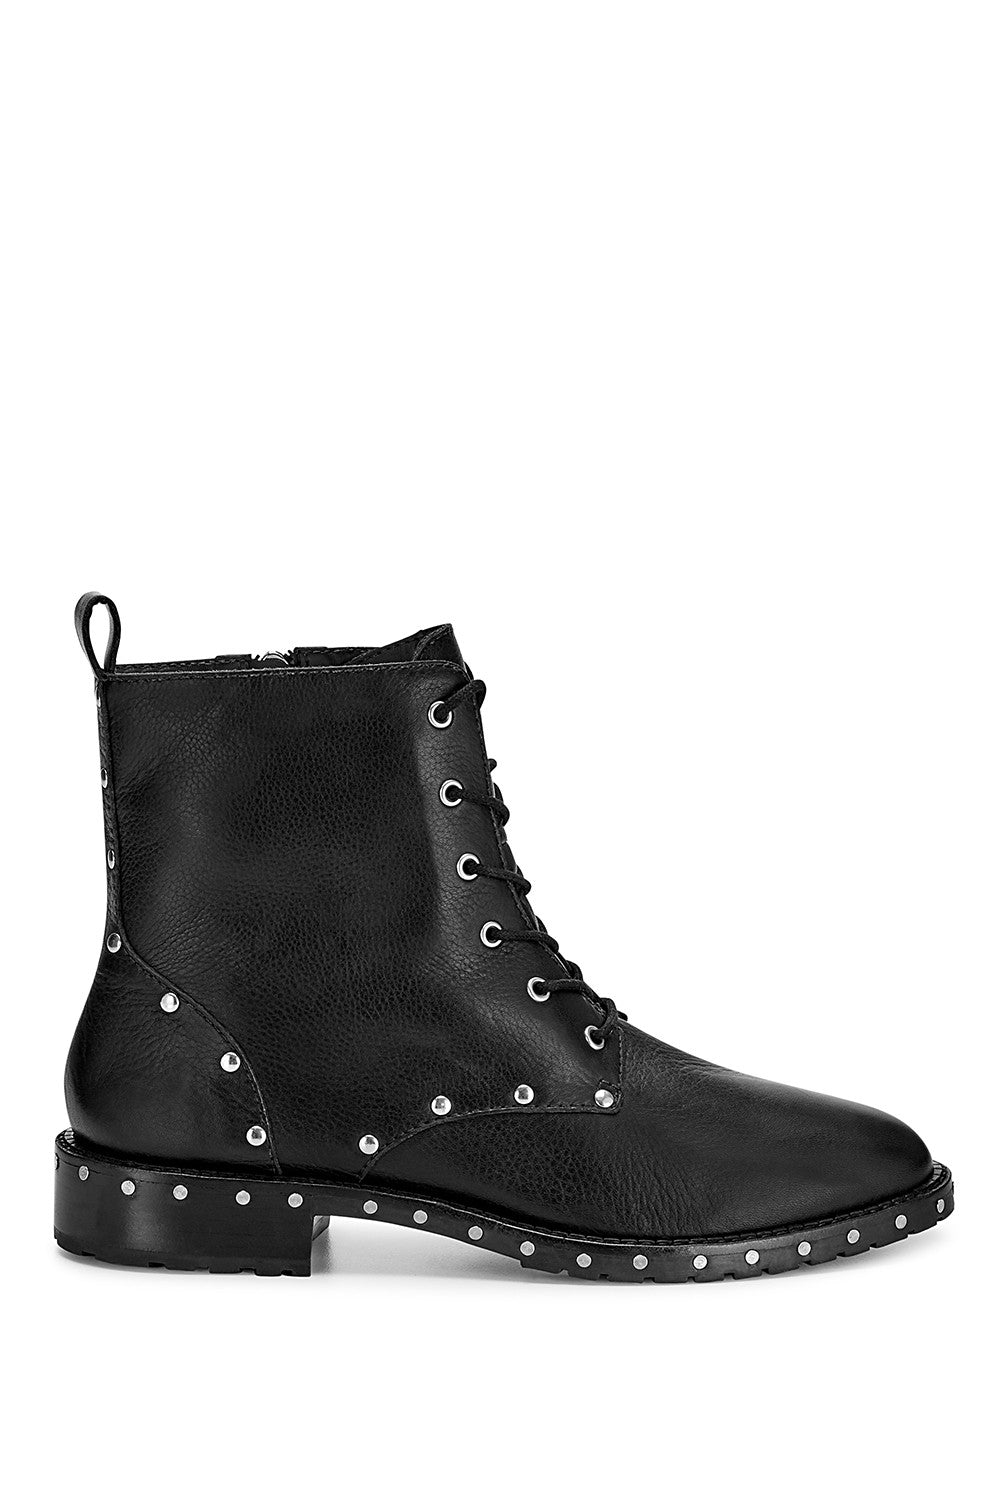 Rebecca Minkoff Gerry Stud Bootie in Black M3291008